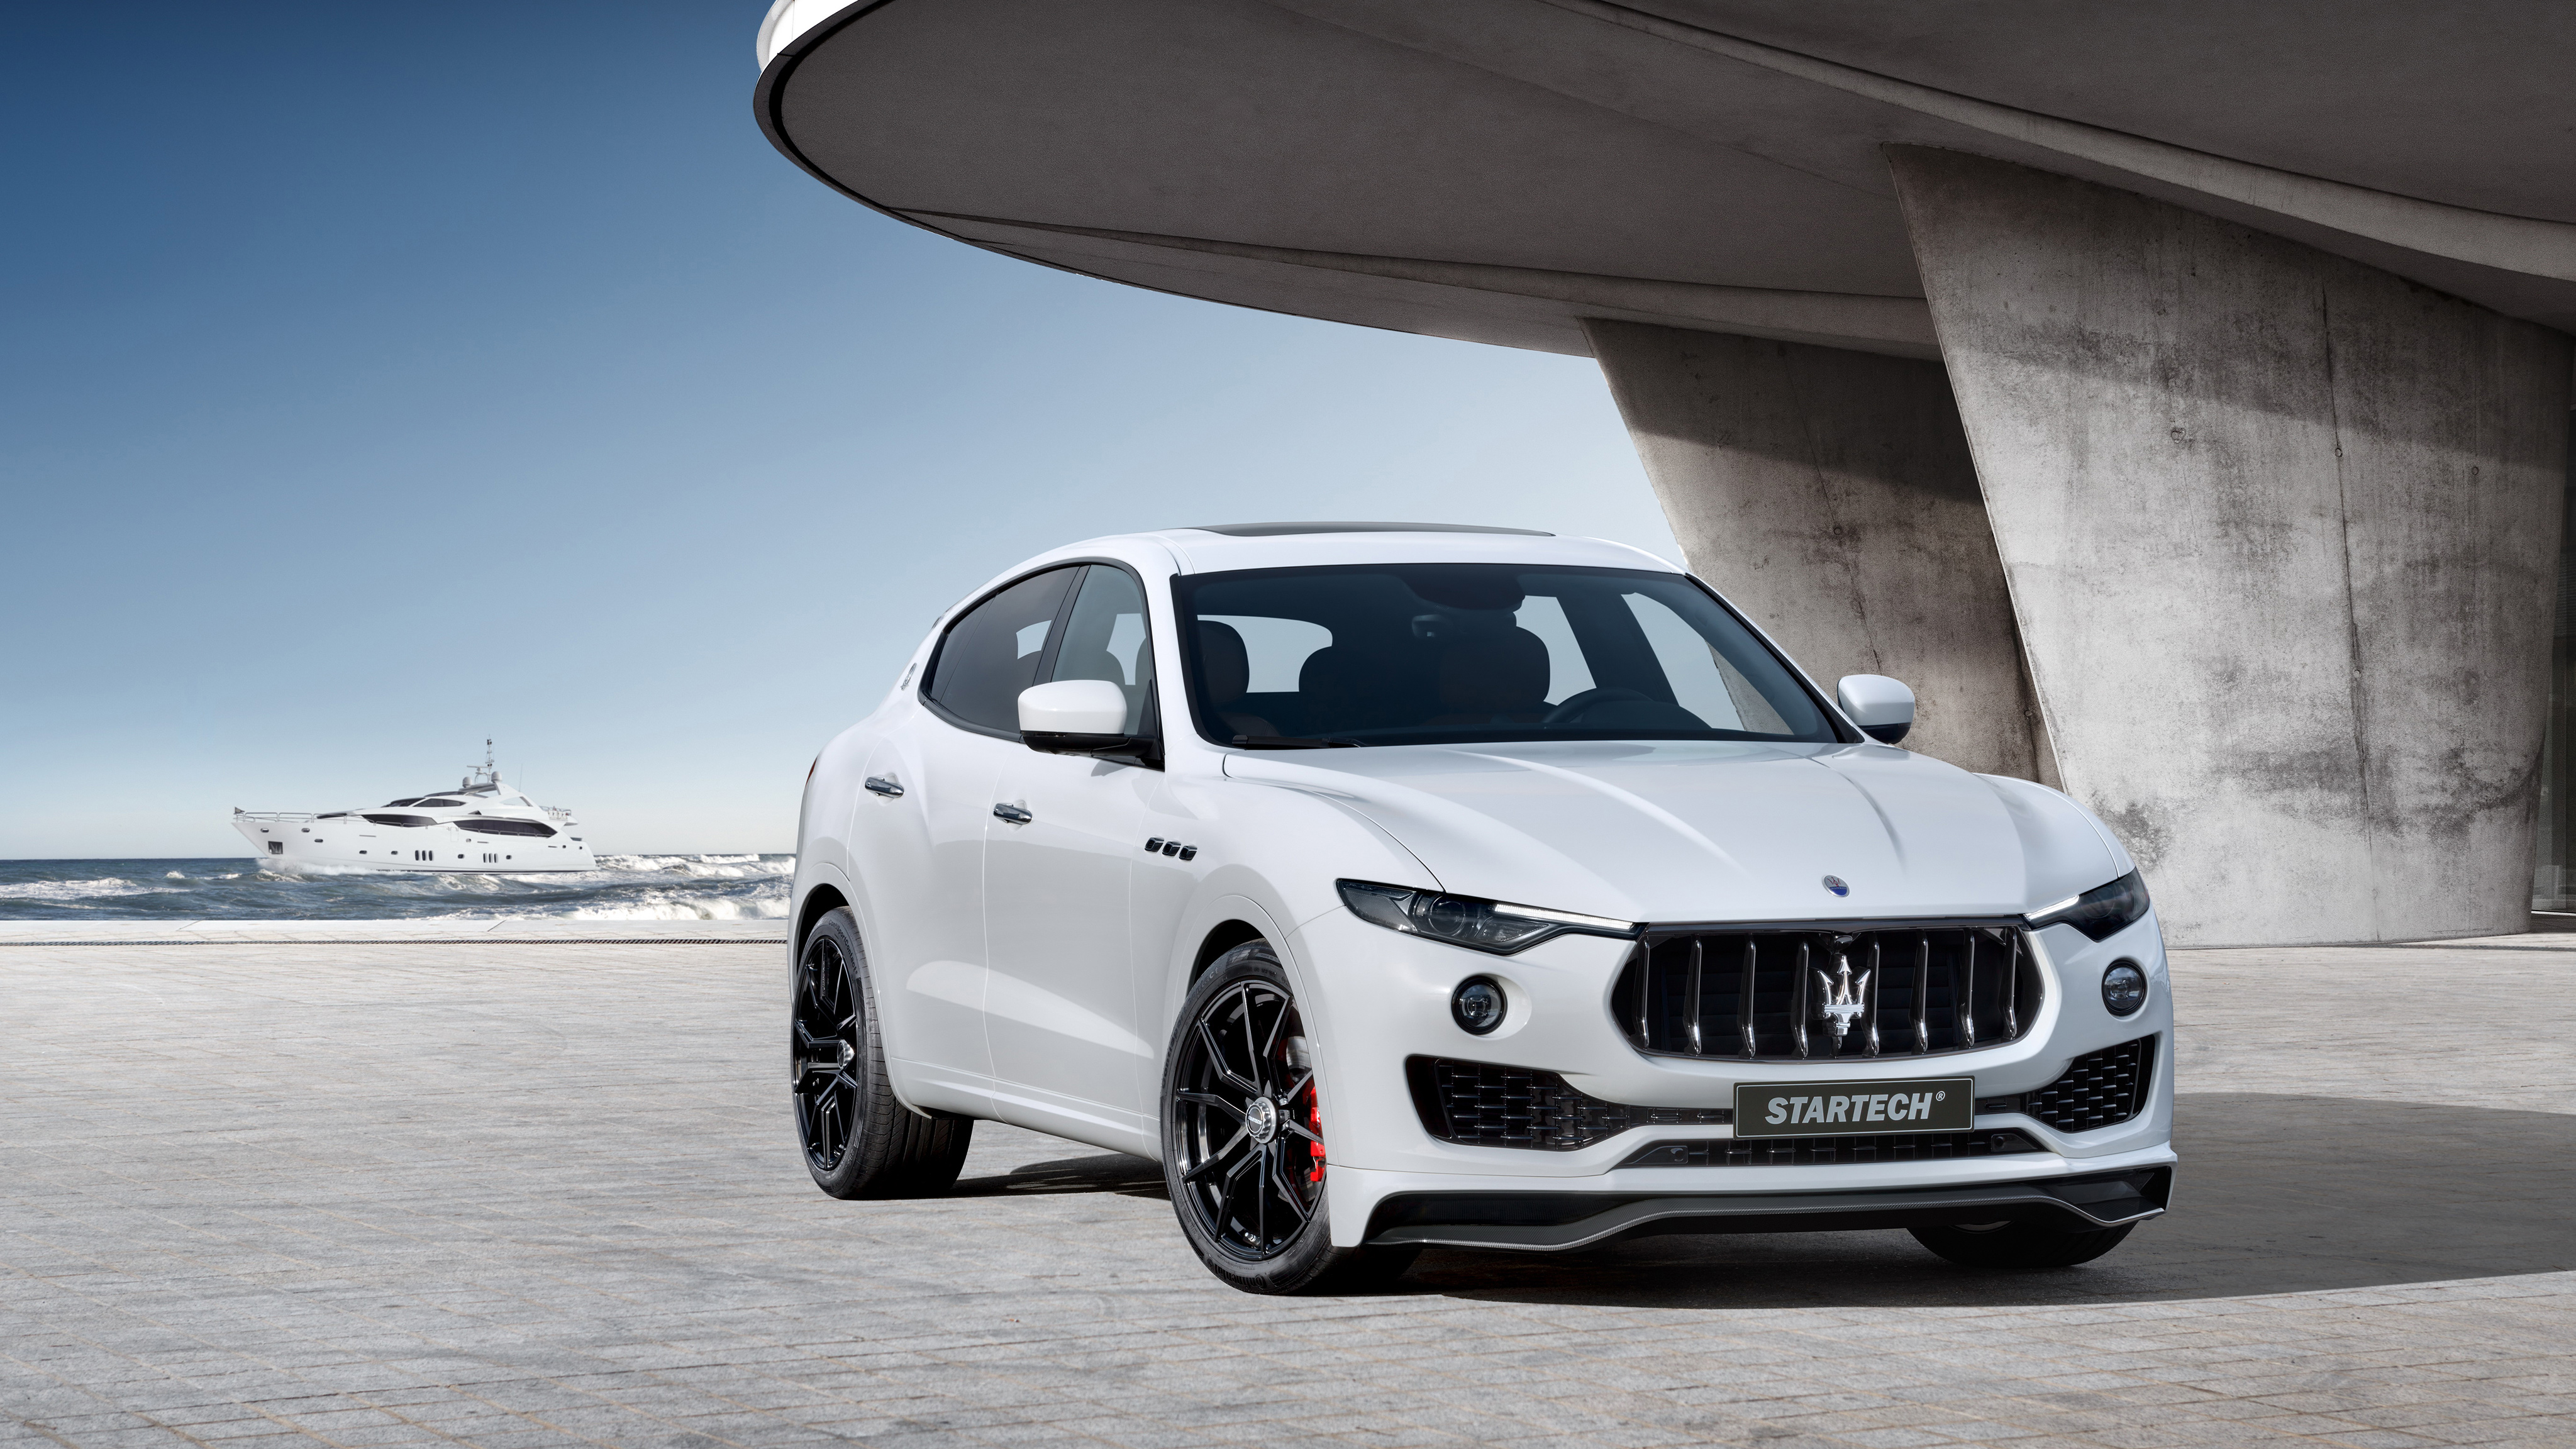 Maserati Levante Wallpapers and Background Images   stmednet 4096x2304